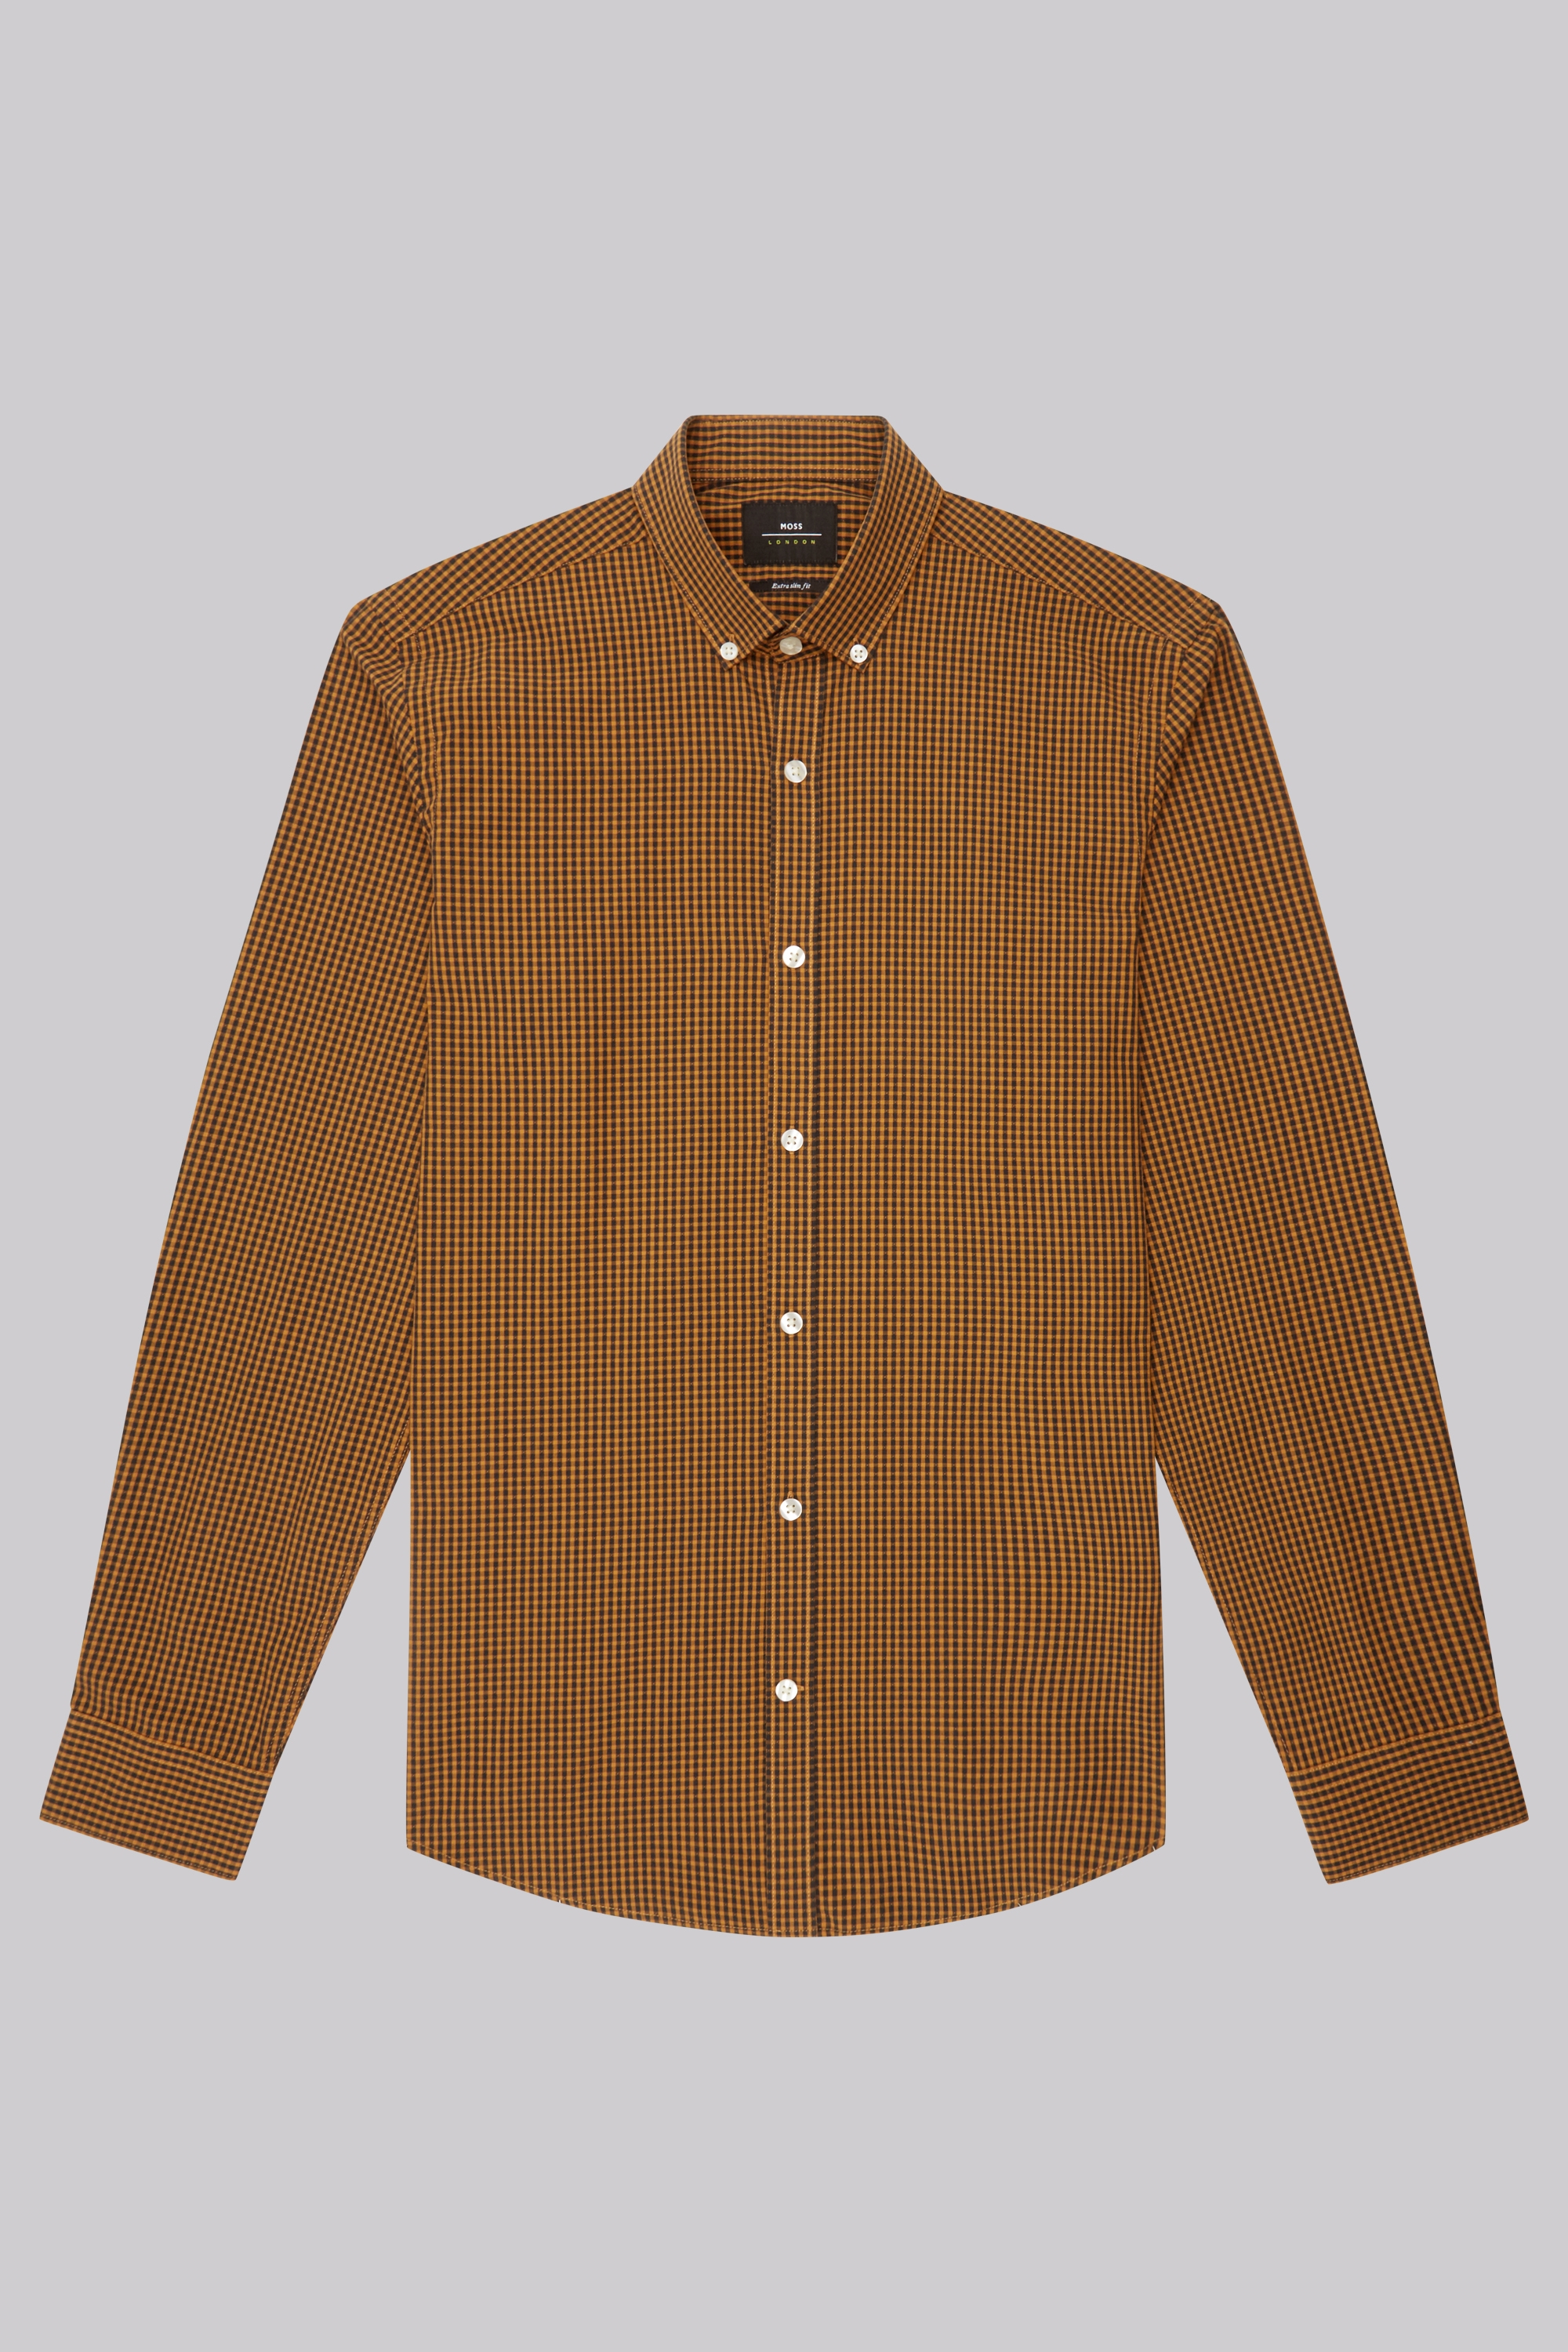 Moss Bros Moss London Extra Slim Fit Mustard Dobby Check Button Down Casual Shirt